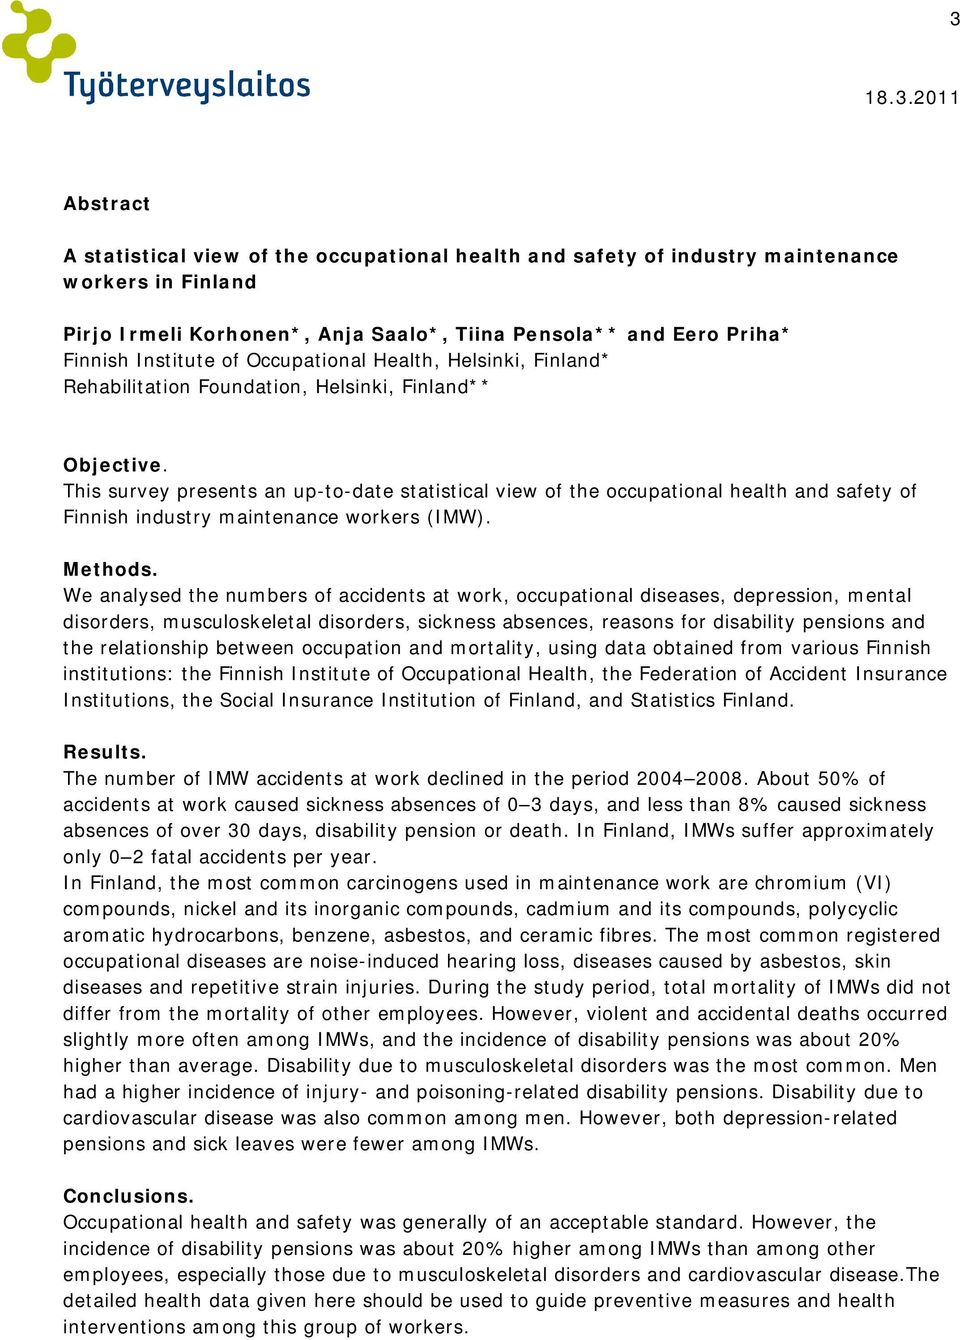 This survey presents an up-to-date statistical view of the occupational health and safety of Finnish industry maintenance workers (IMW). Methods.